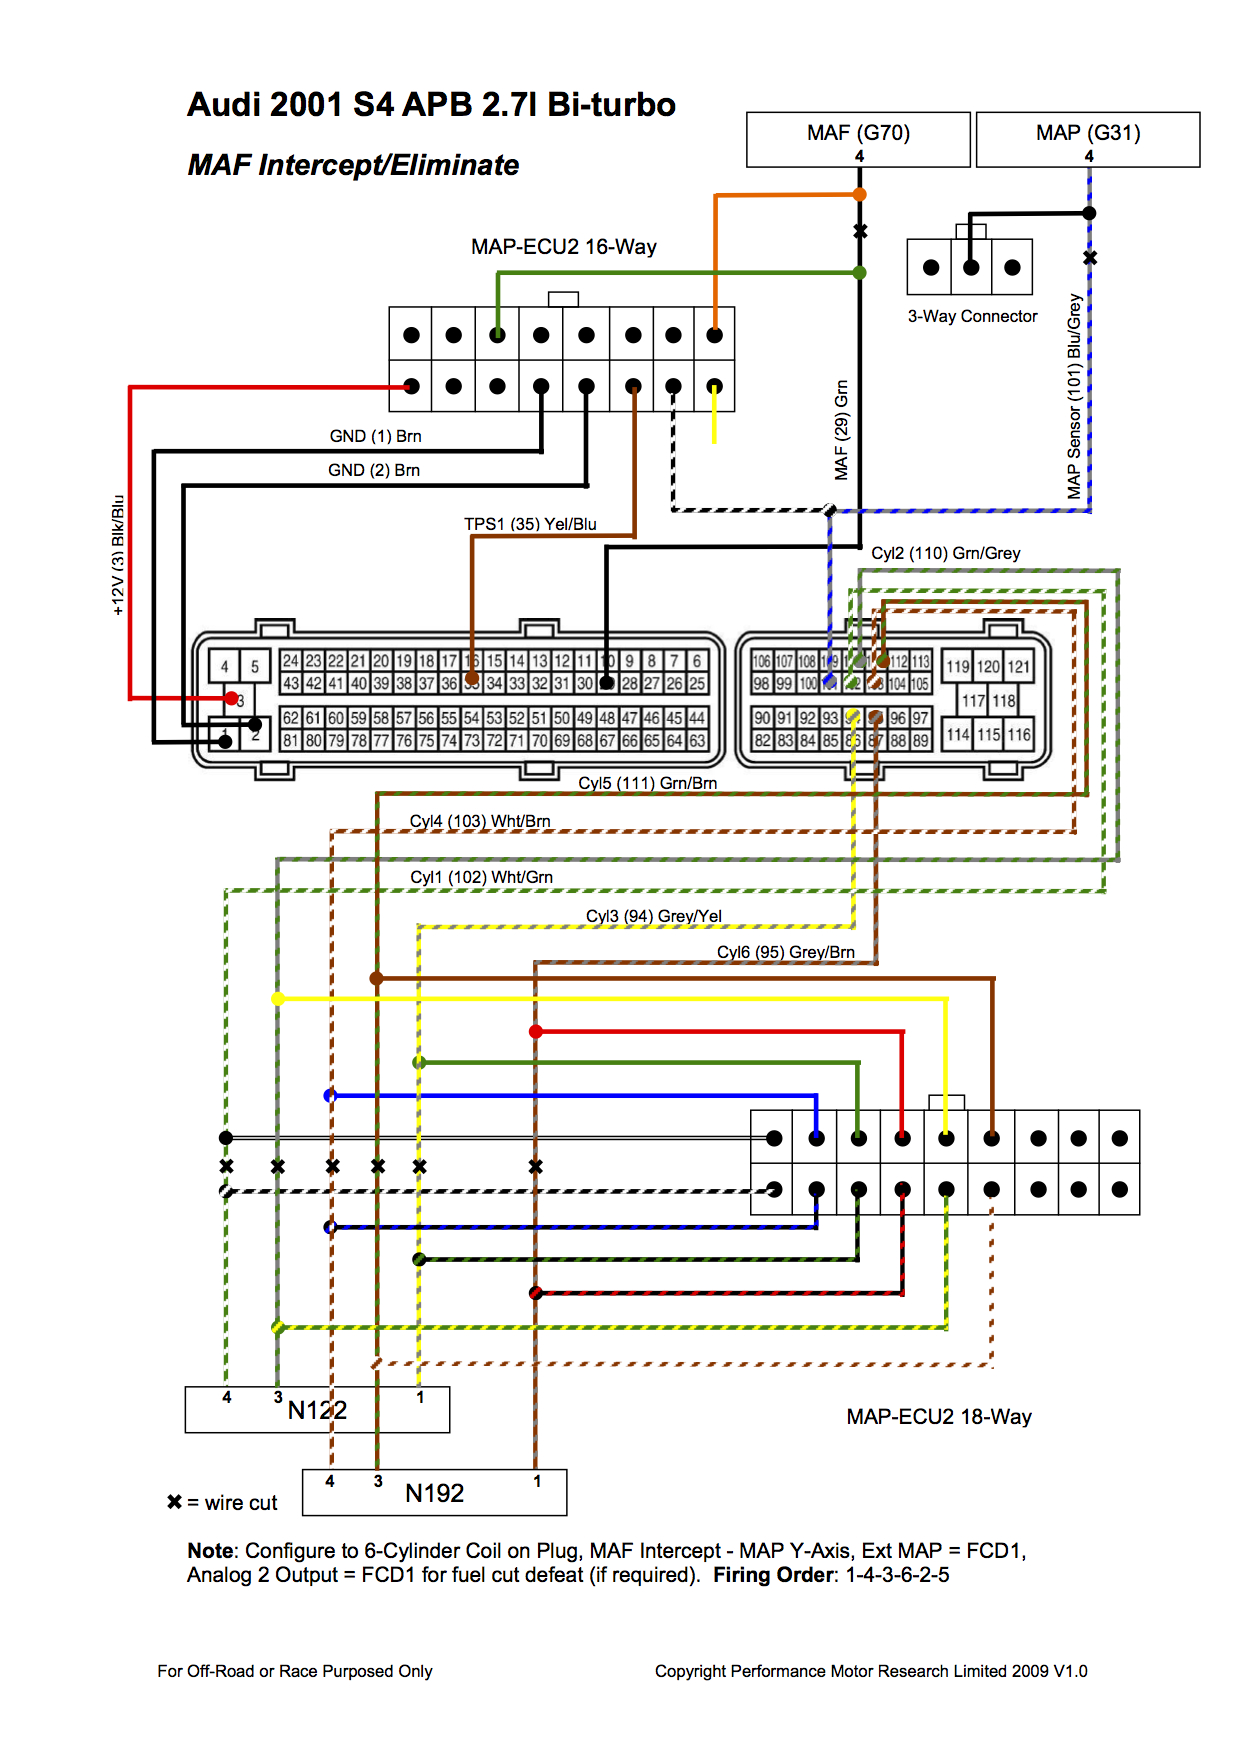 Audi S4 20011 ecu wiring diagram paccar ecu wiring diagram \u2022 wiring diagrams j 2005 toyota corolla wiring diagram pdf at panicattacktreatment.co